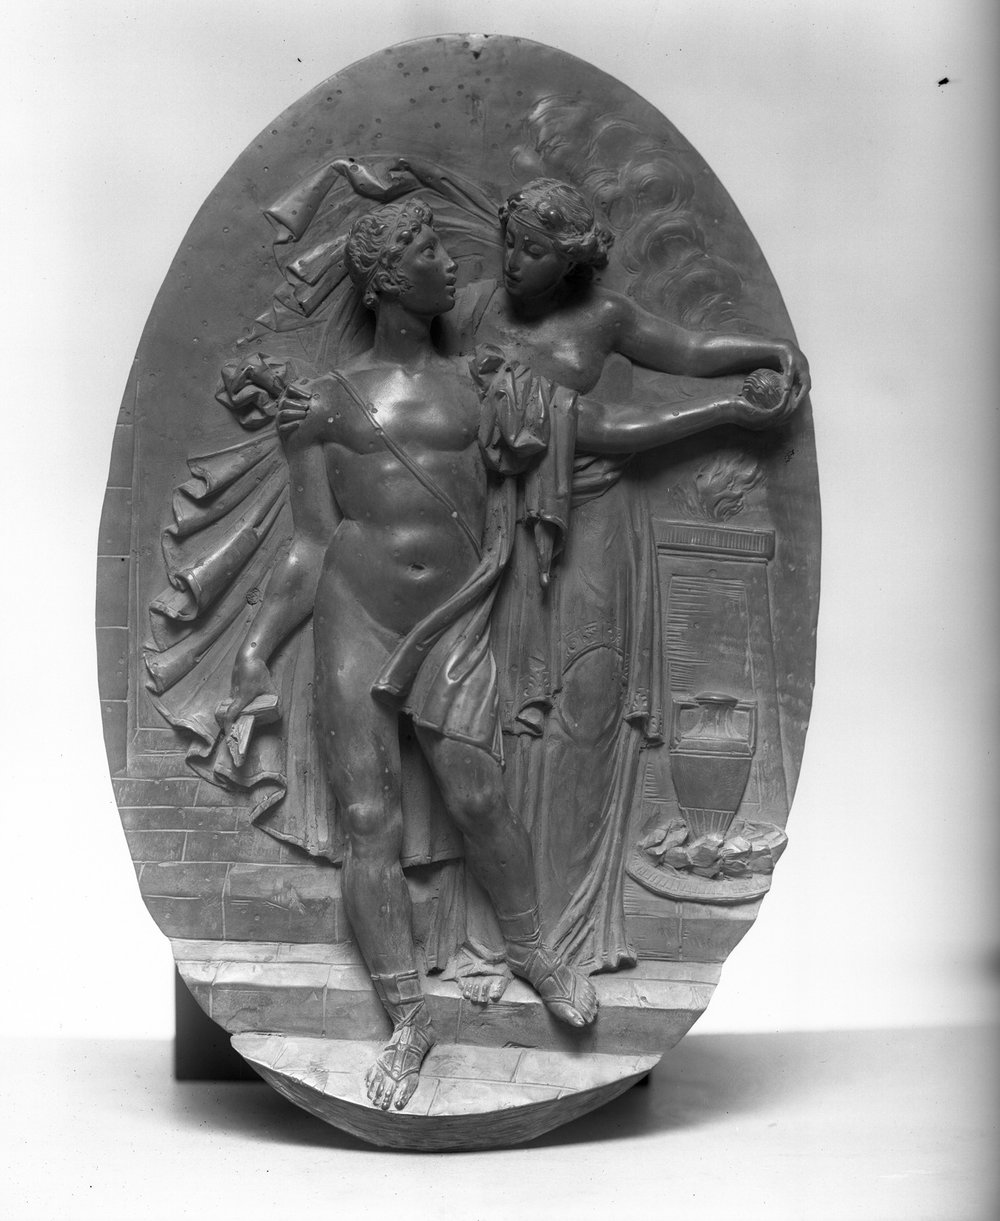 https://art.thewalters.org/detail/7221/oval-relief-depicting-theseus-and-ariadne/